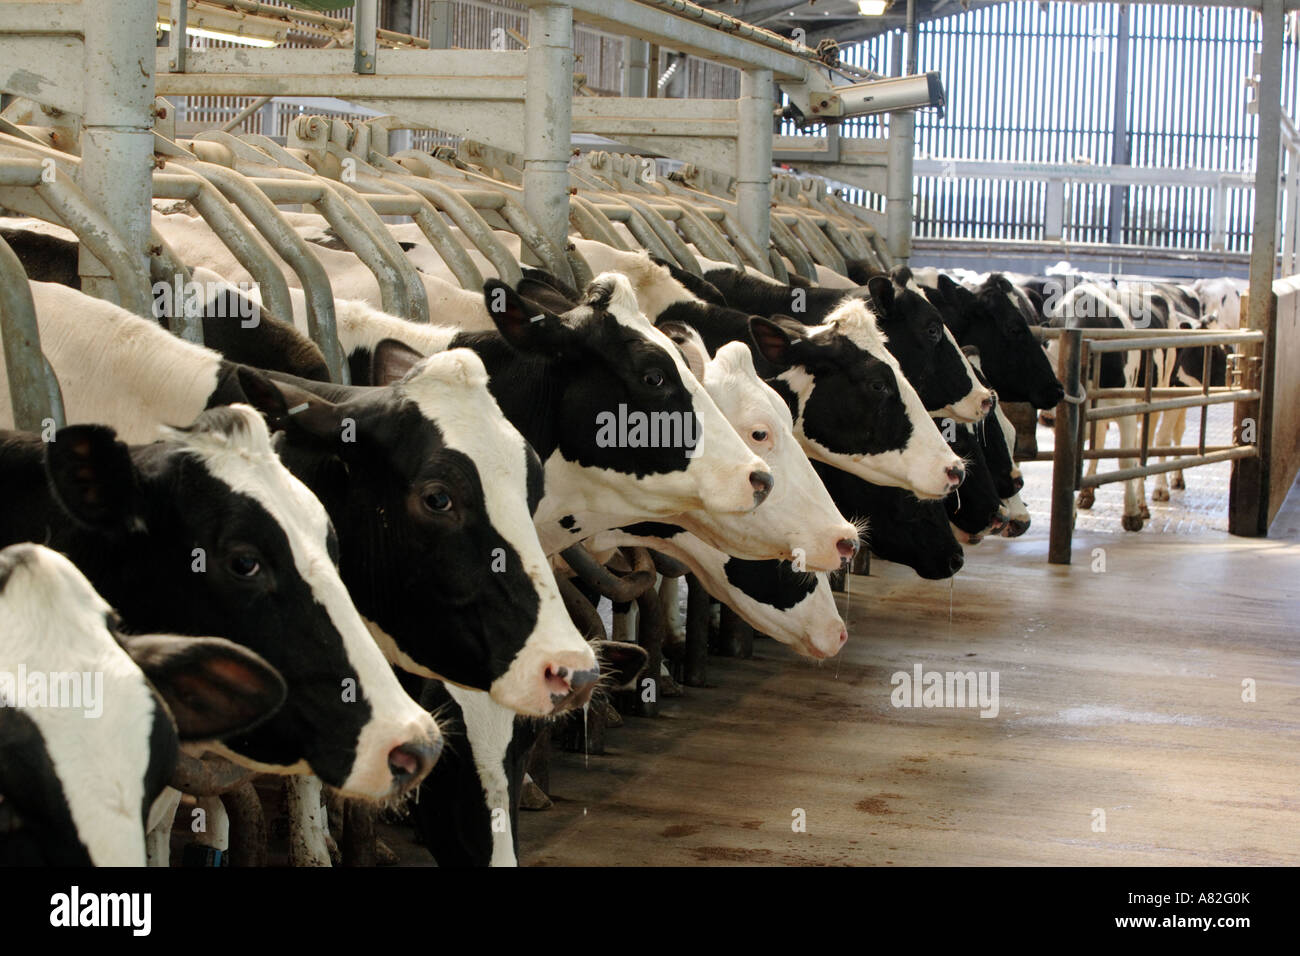 Dairy cows being milked automatically in a milking shed in Gloucestershire, UK Stock Photo